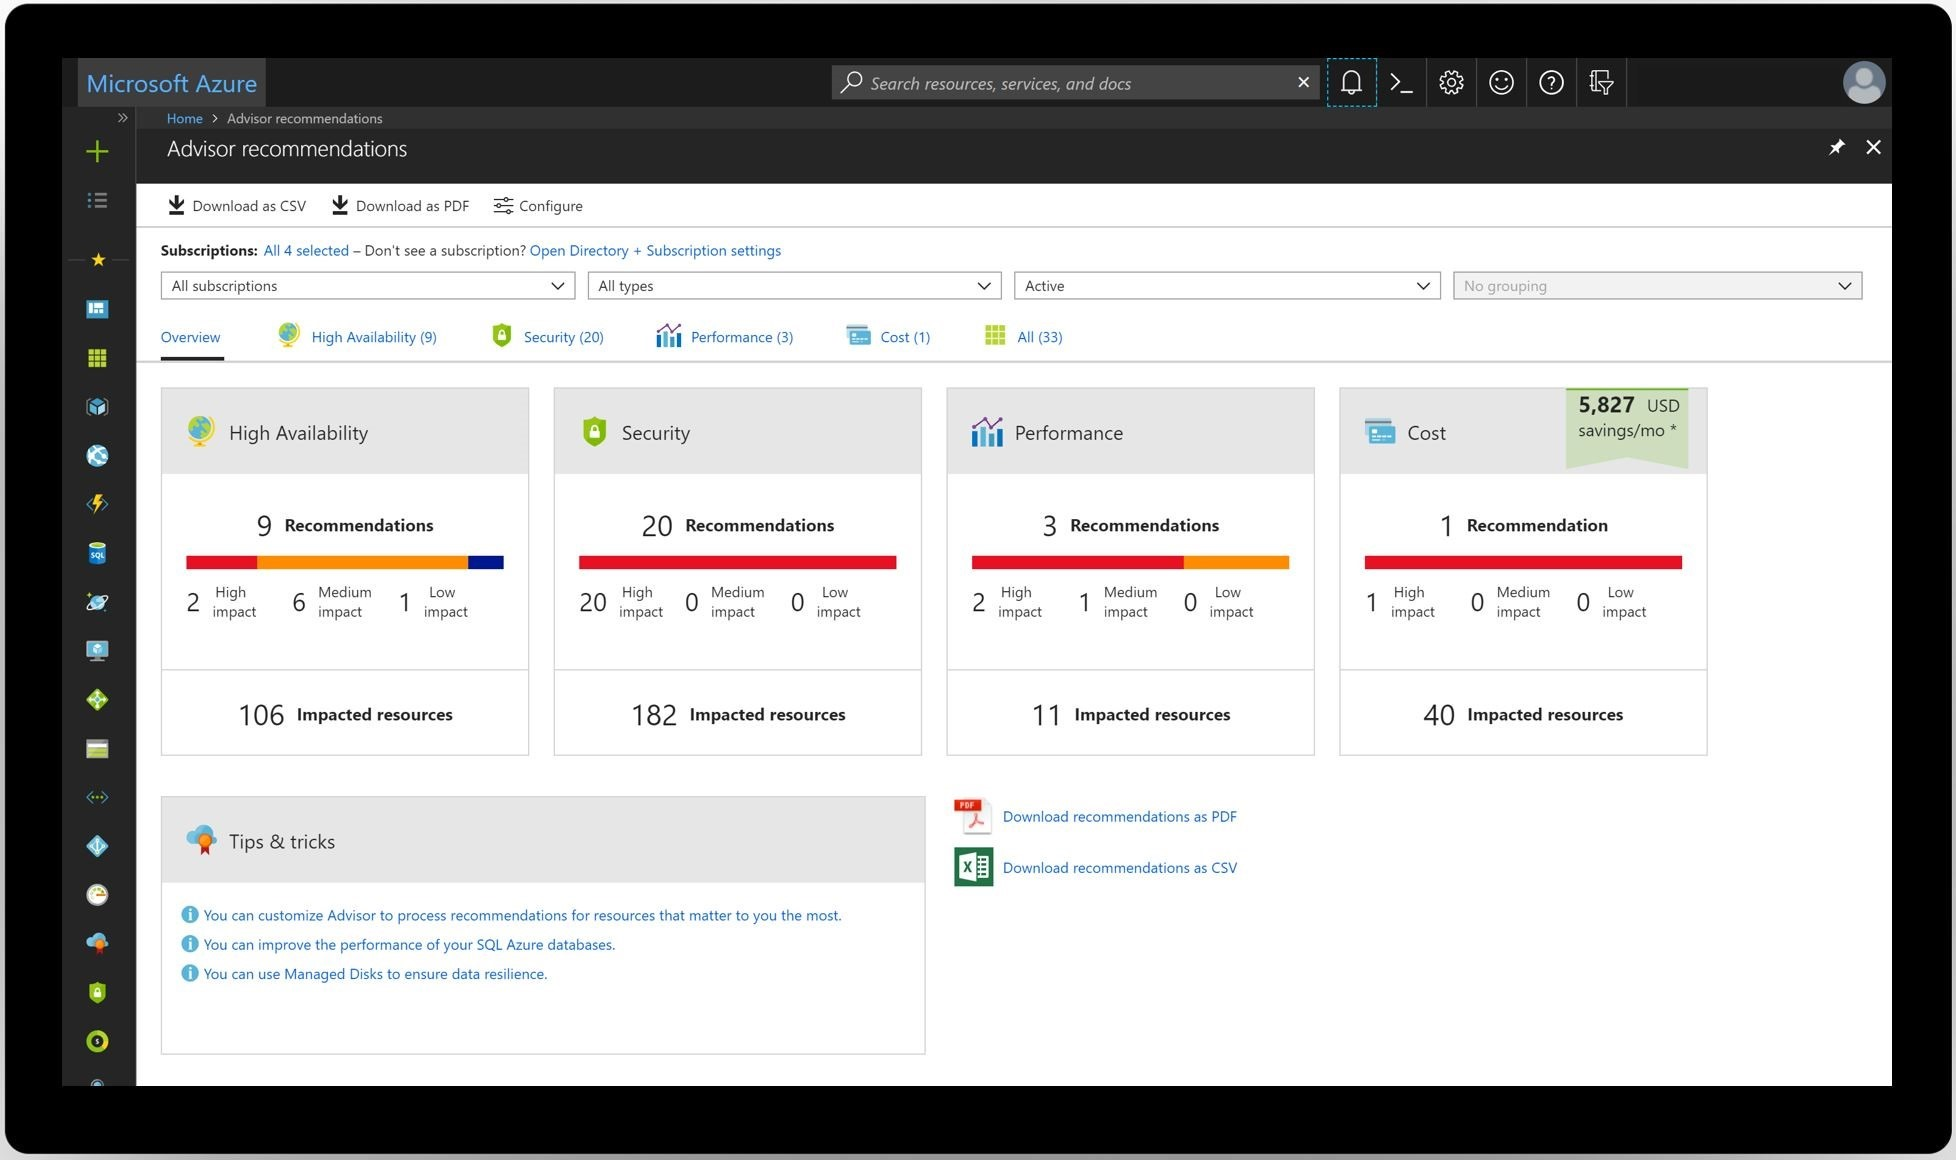 Five habits of highly effective Azure users